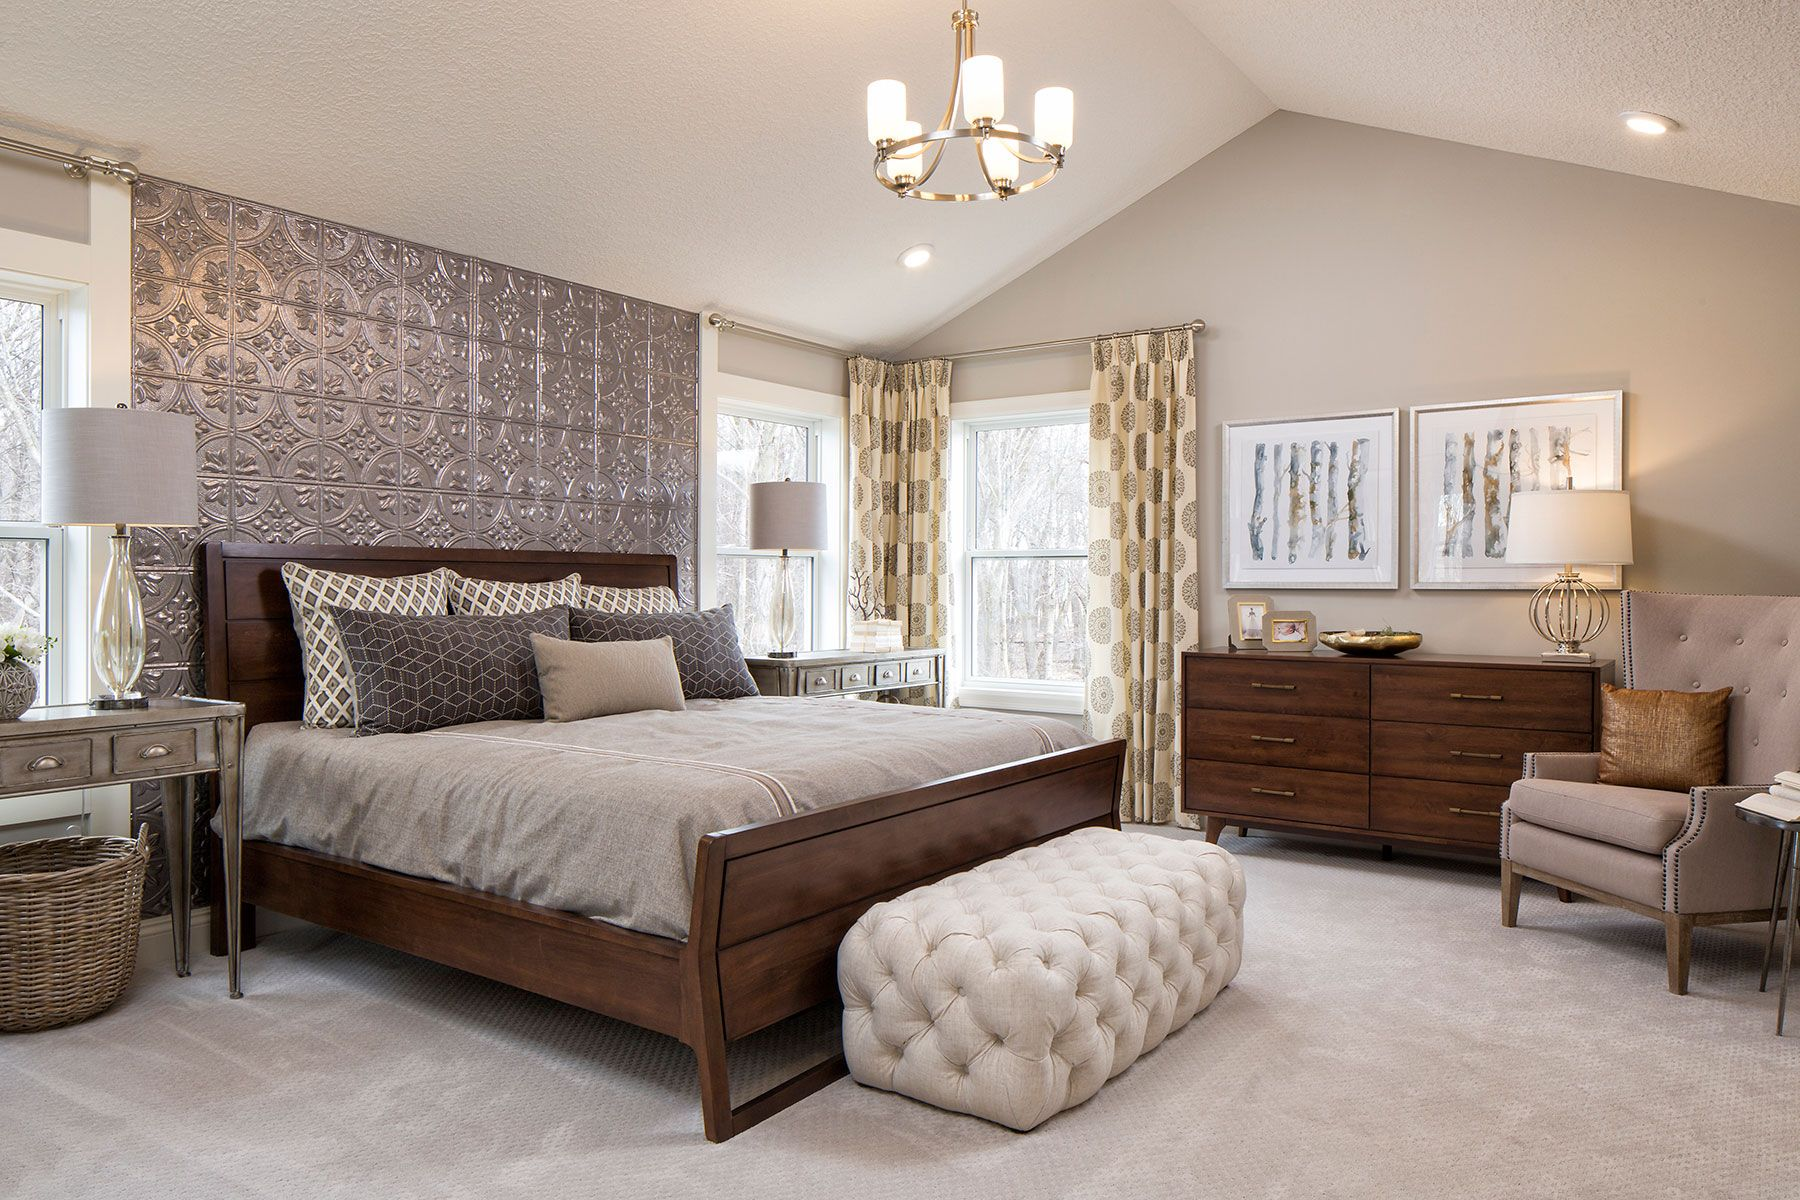 Bedroom featured in the Eastman By M/I Homes in Minneapolis-St. Paul, MN